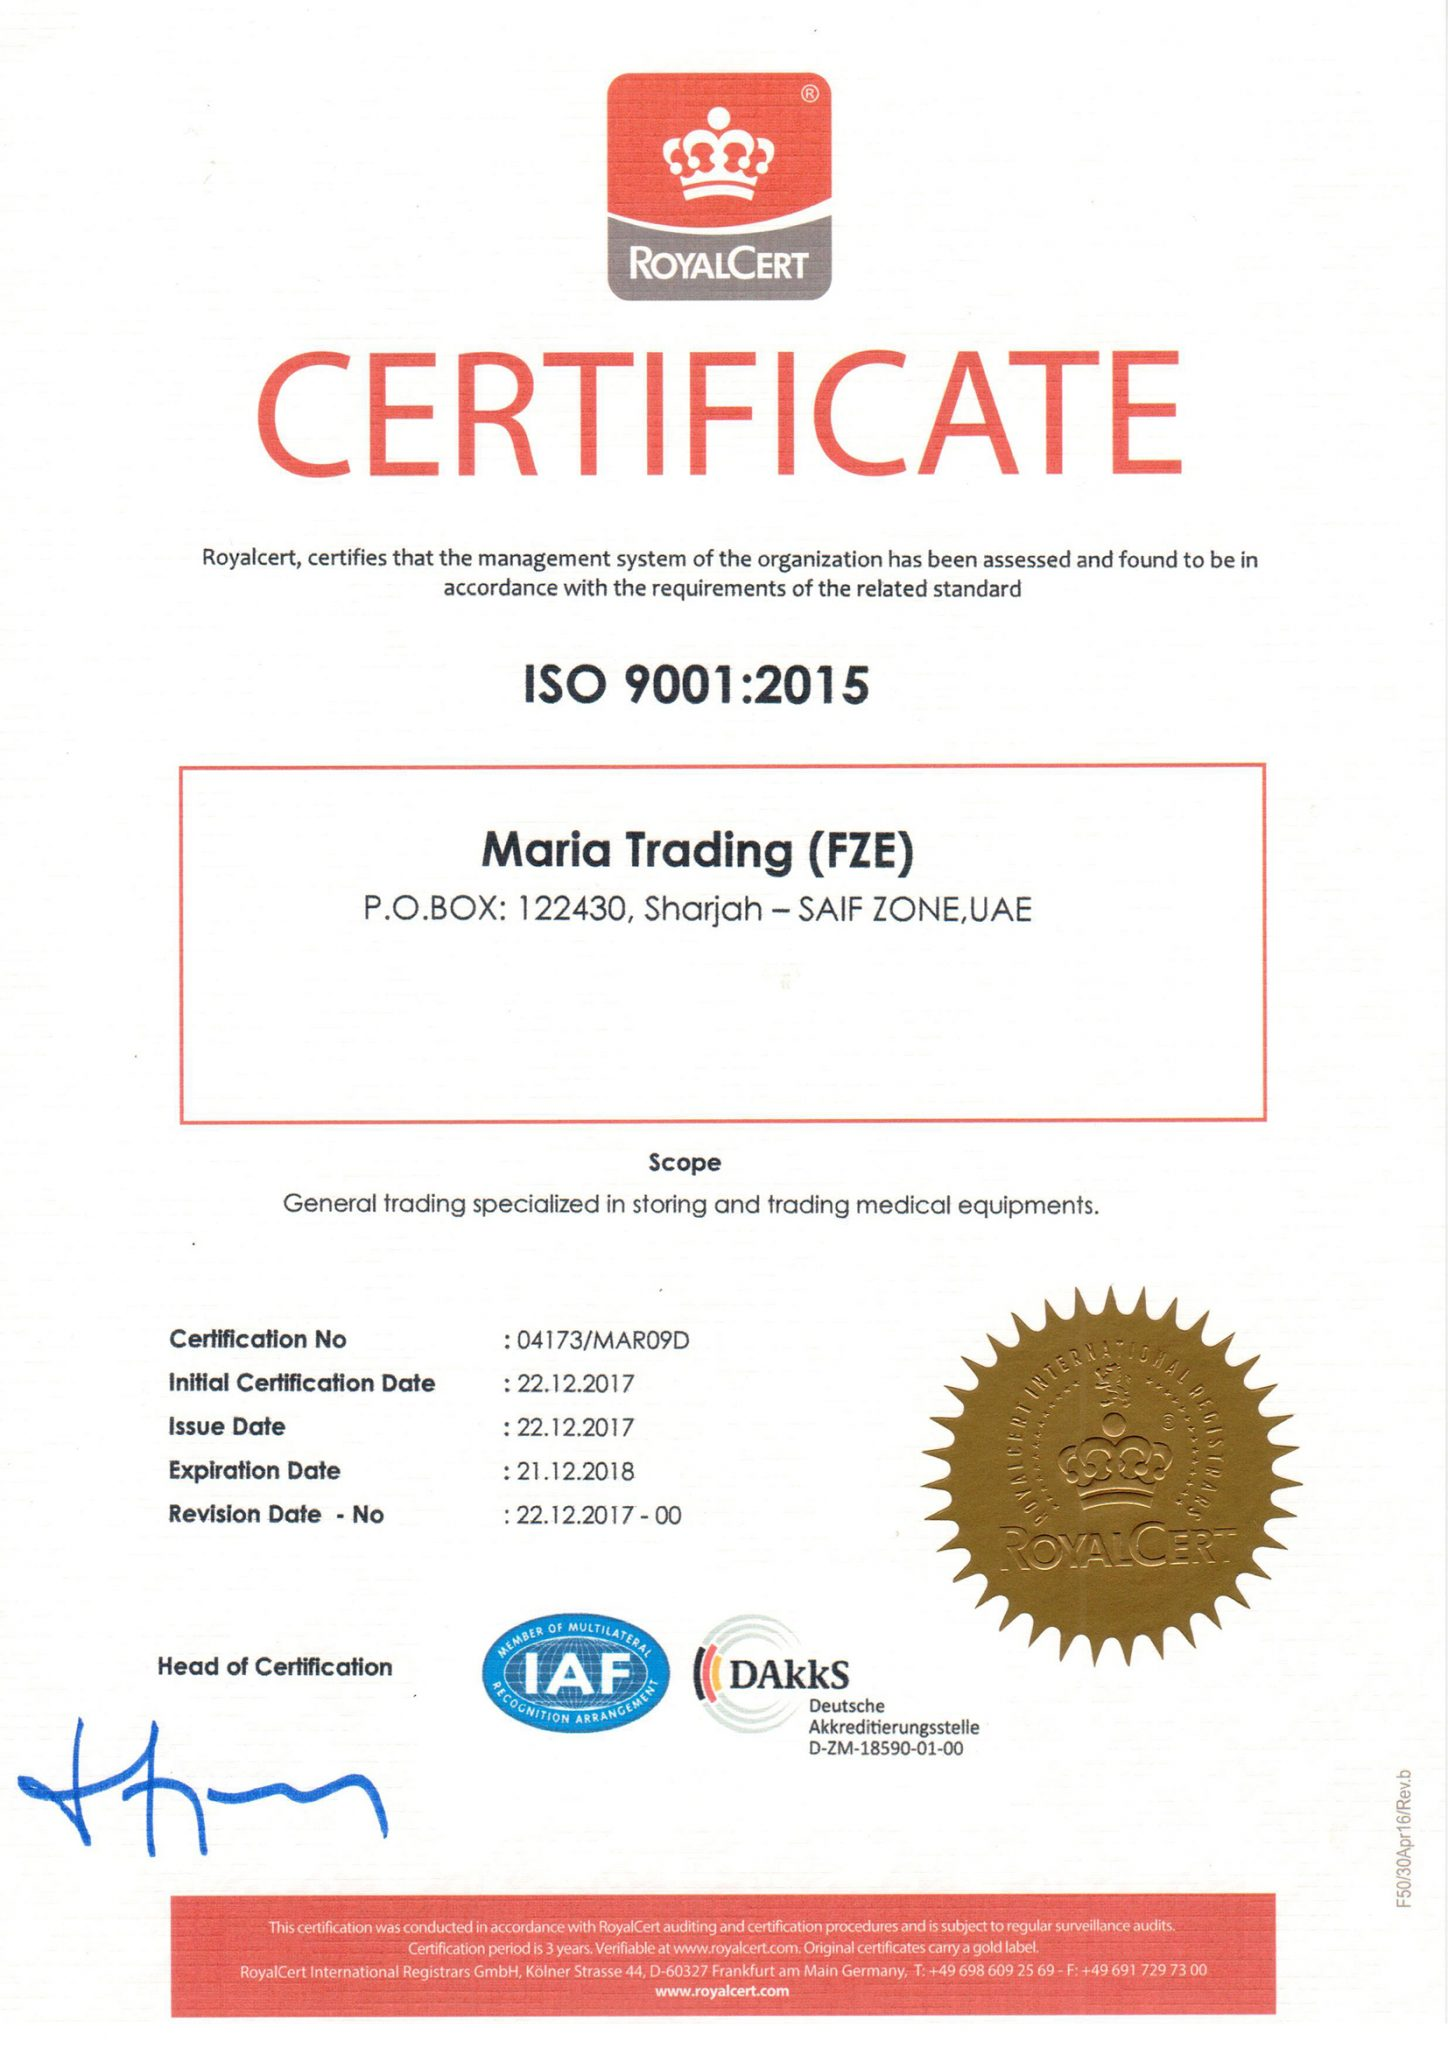 maria trading an ISO Certified Company